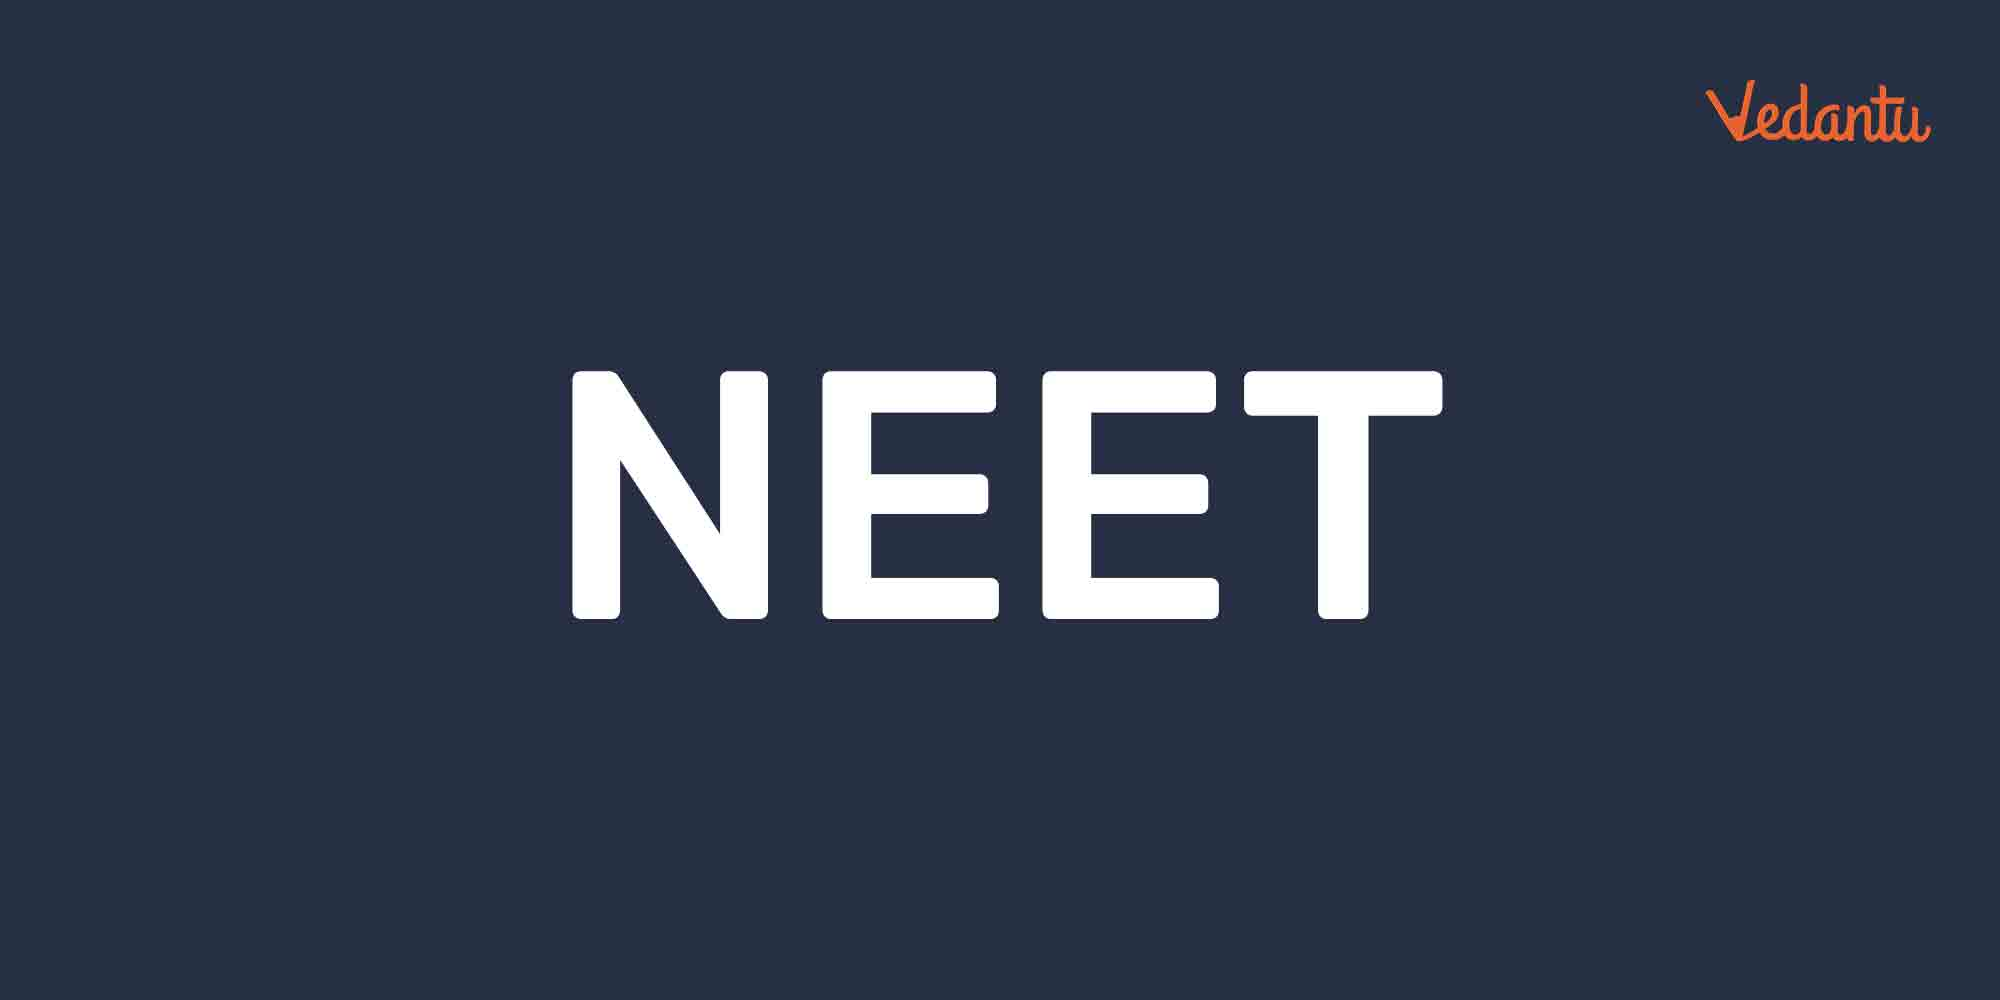 How do I Prepare for NEET in the Last 2 Weeks?